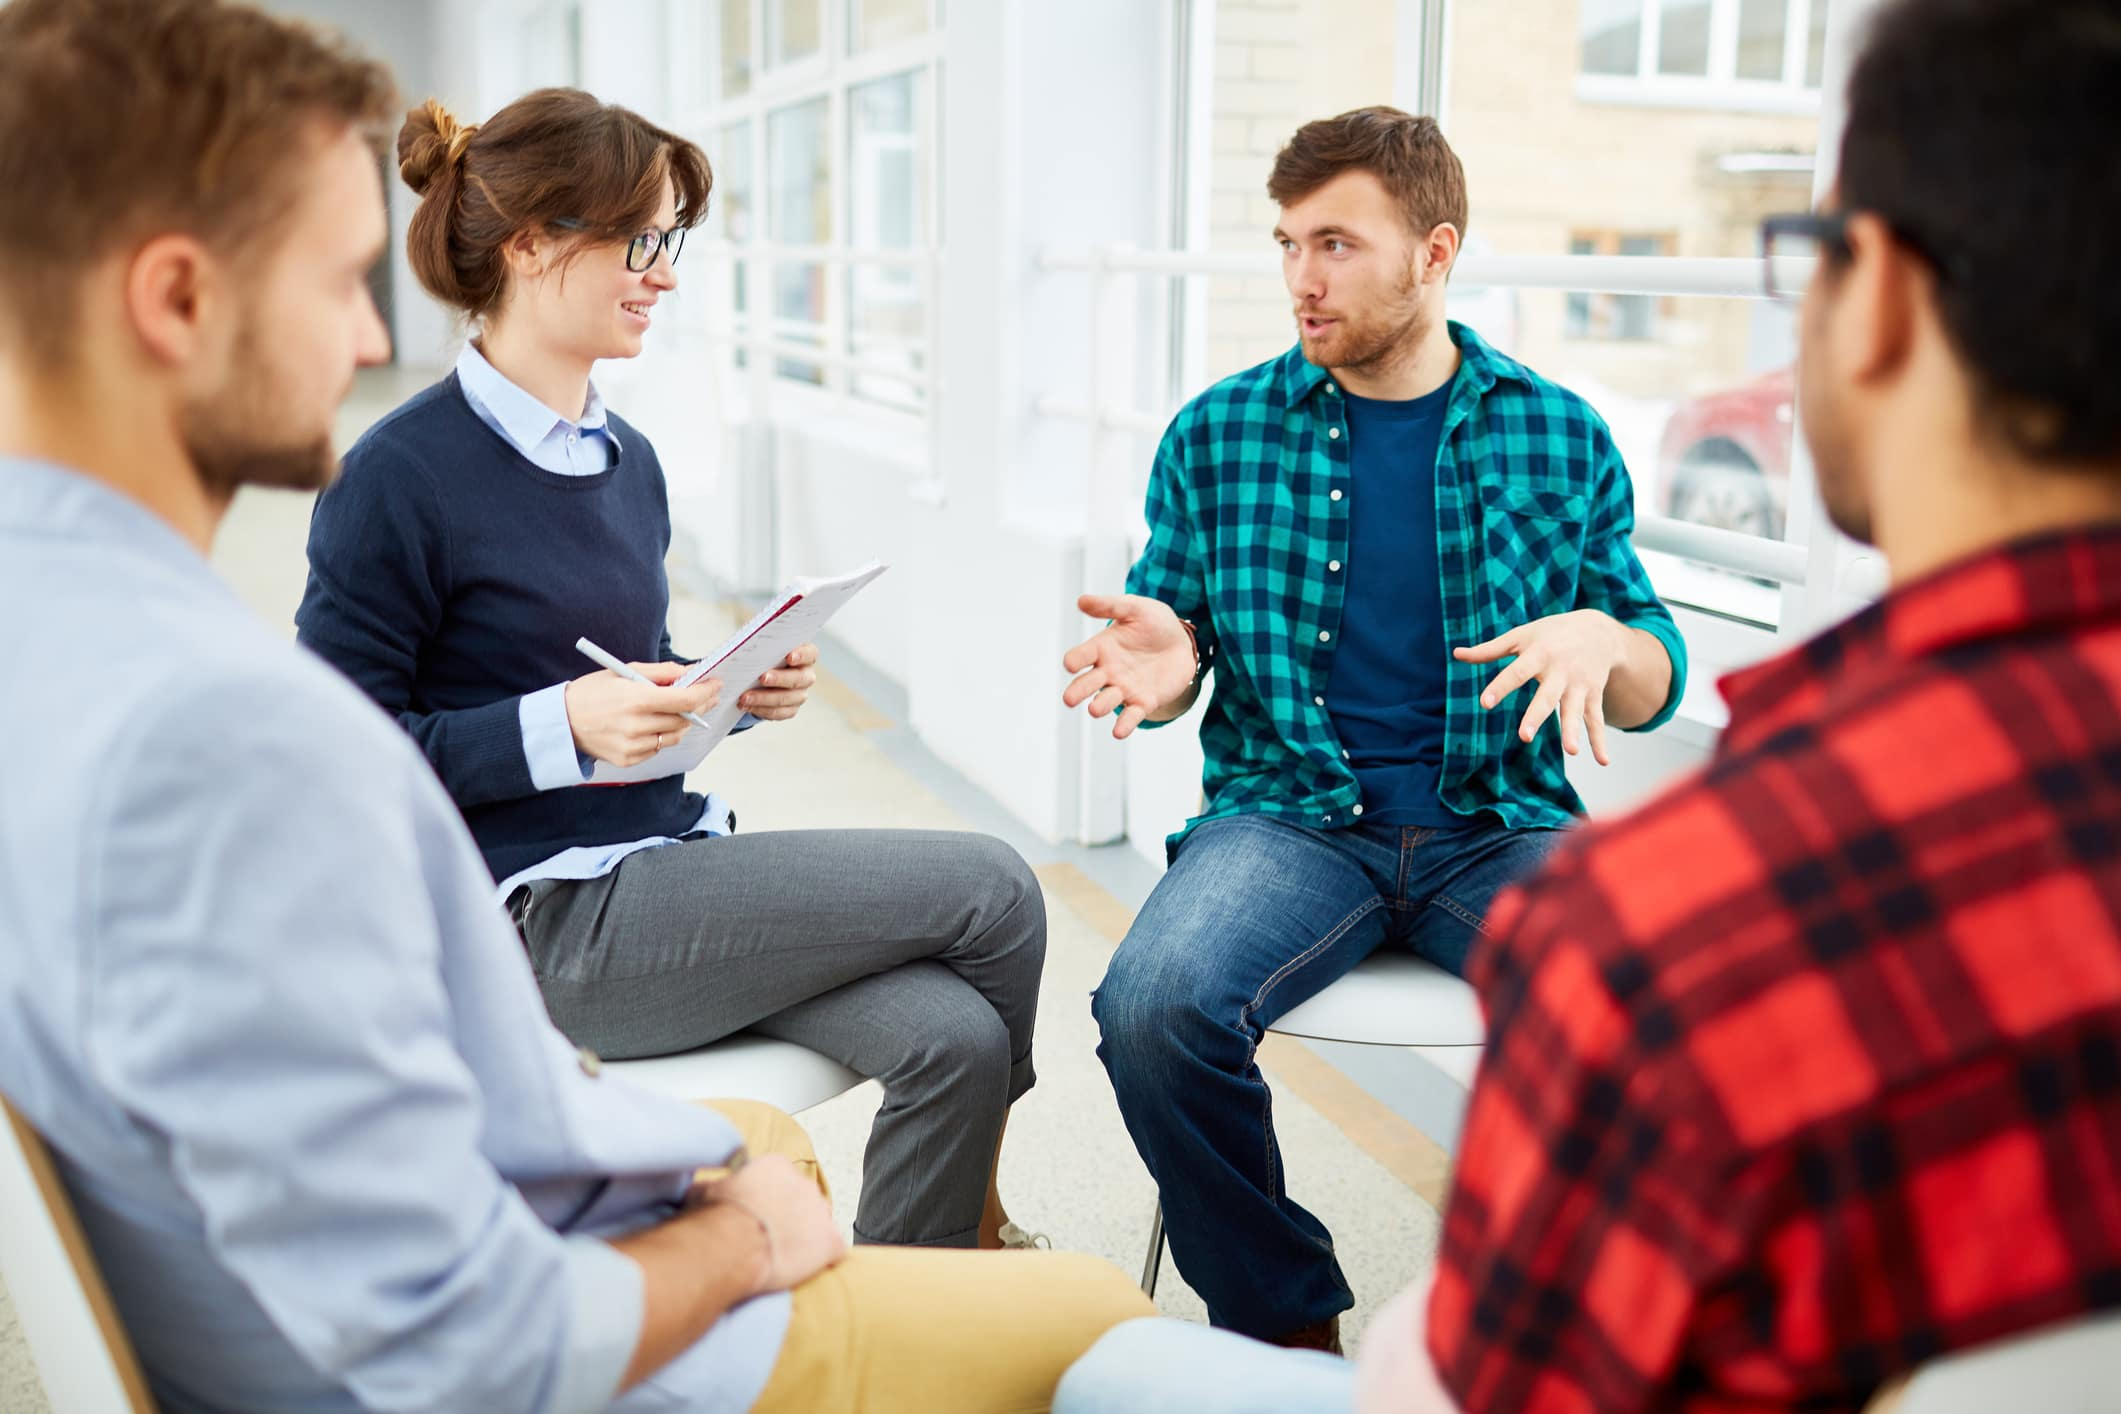 therapy group for anxiety sitting around each other